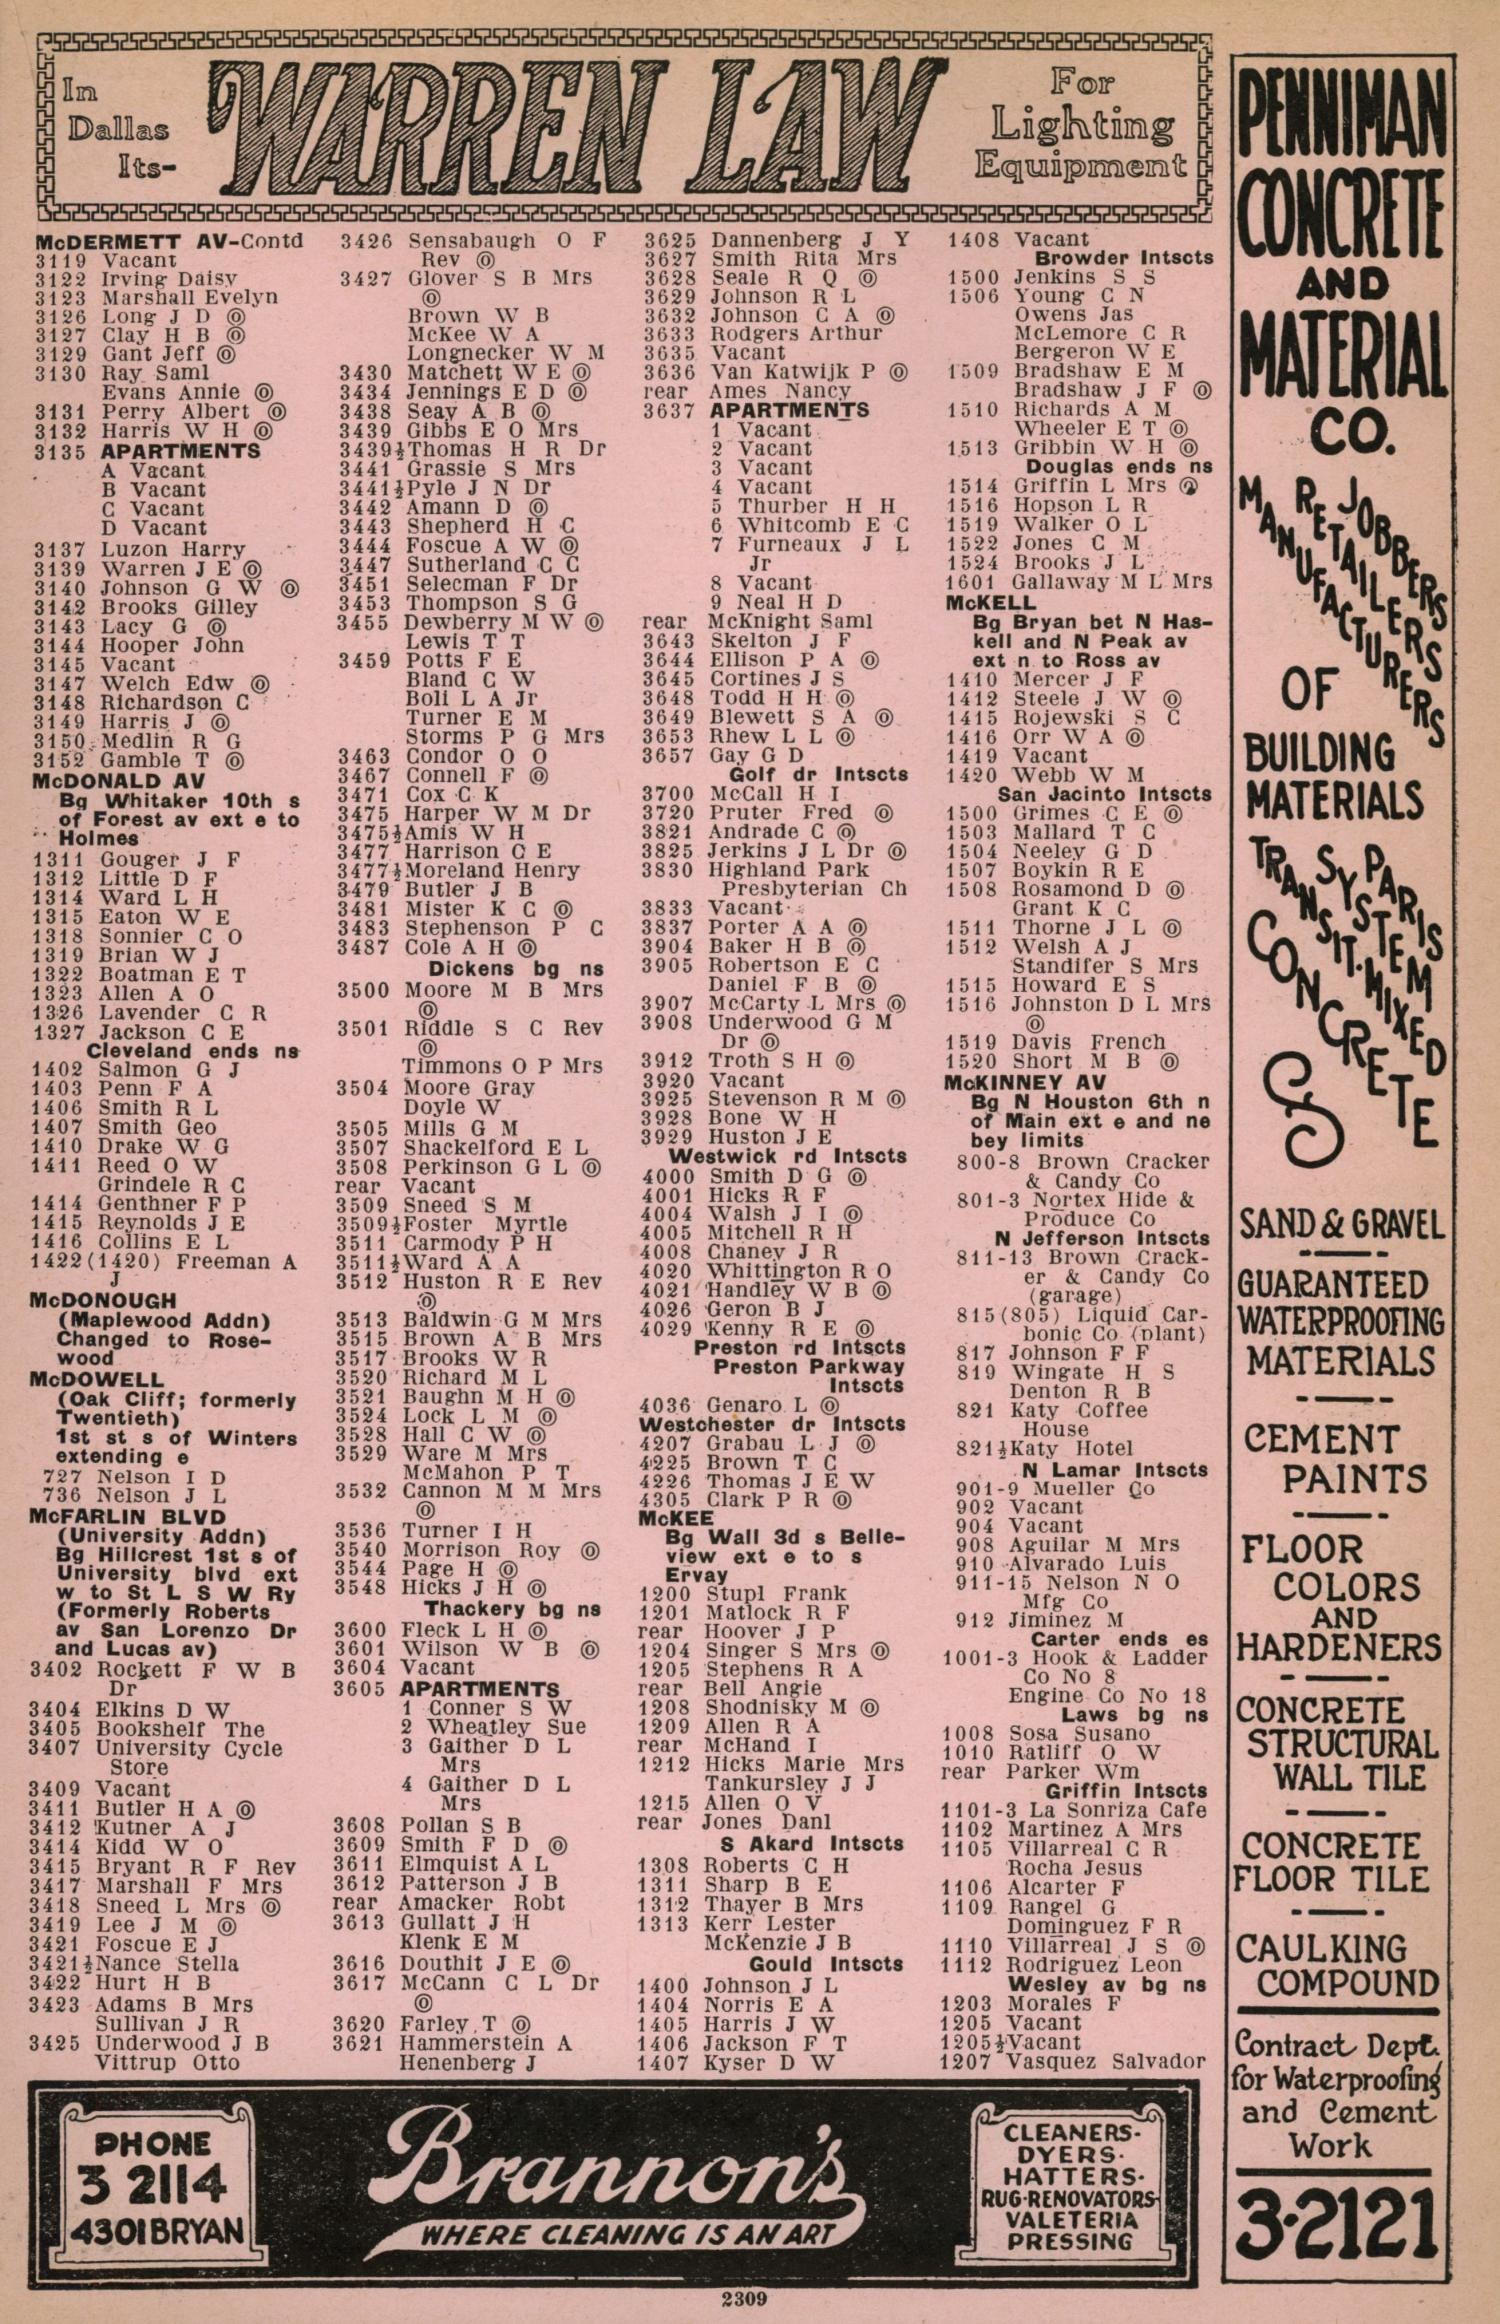 Dallas City Directory, 1930 - Page 2,309 - The Portal to Texas History